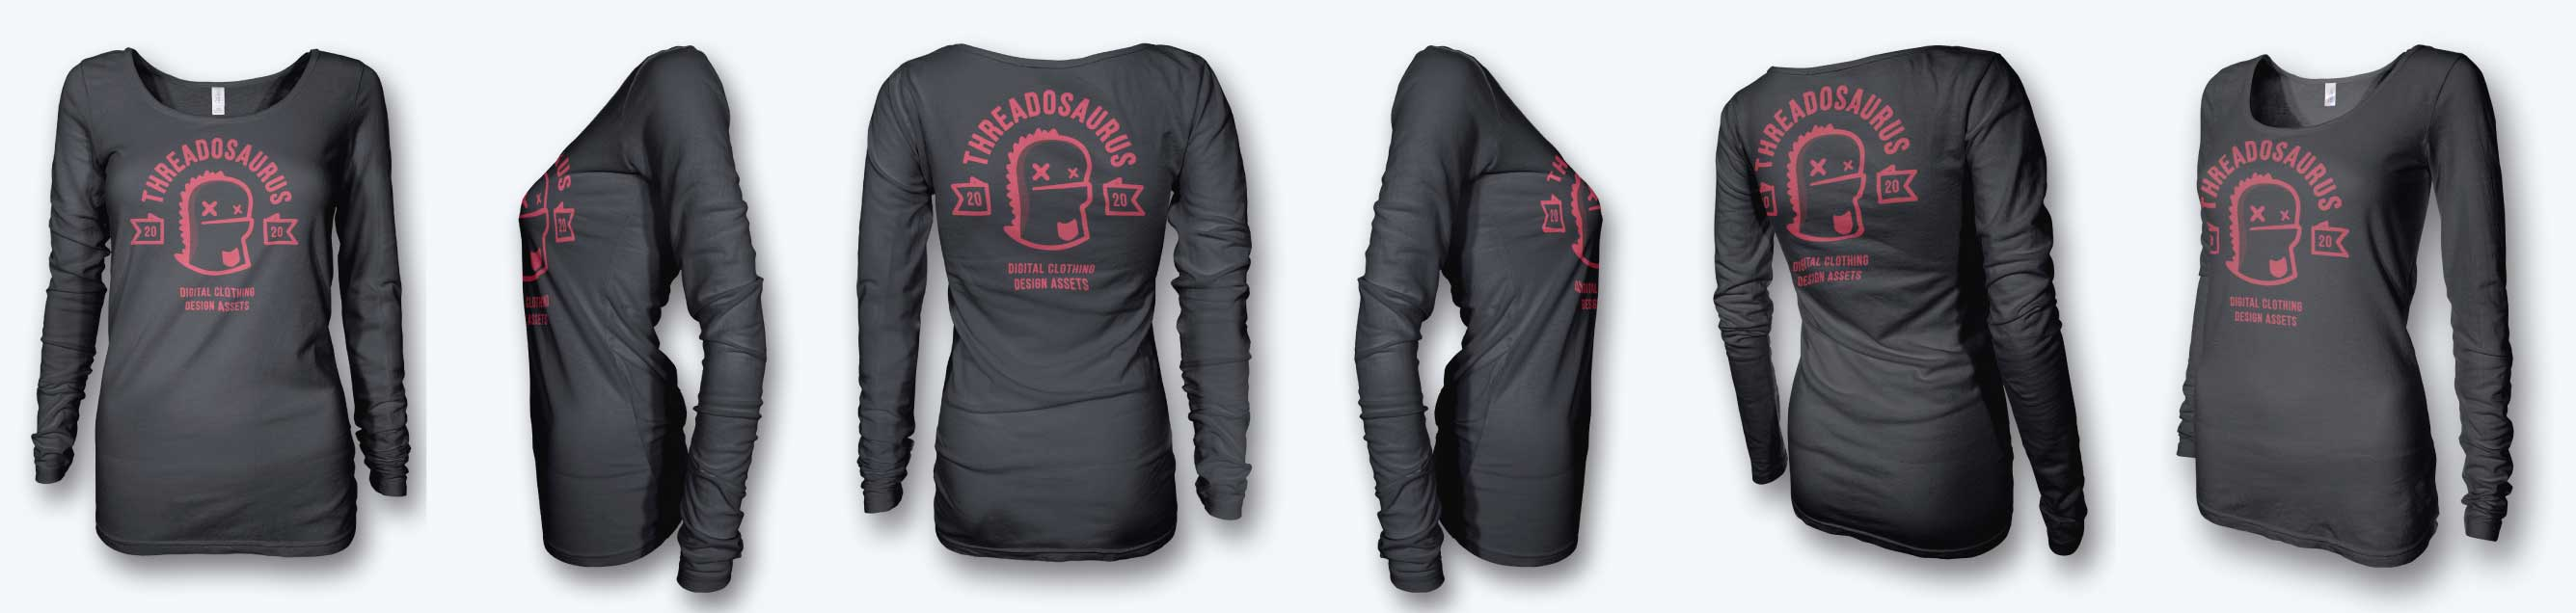 womens long sleeve t-shirt mockup front back side